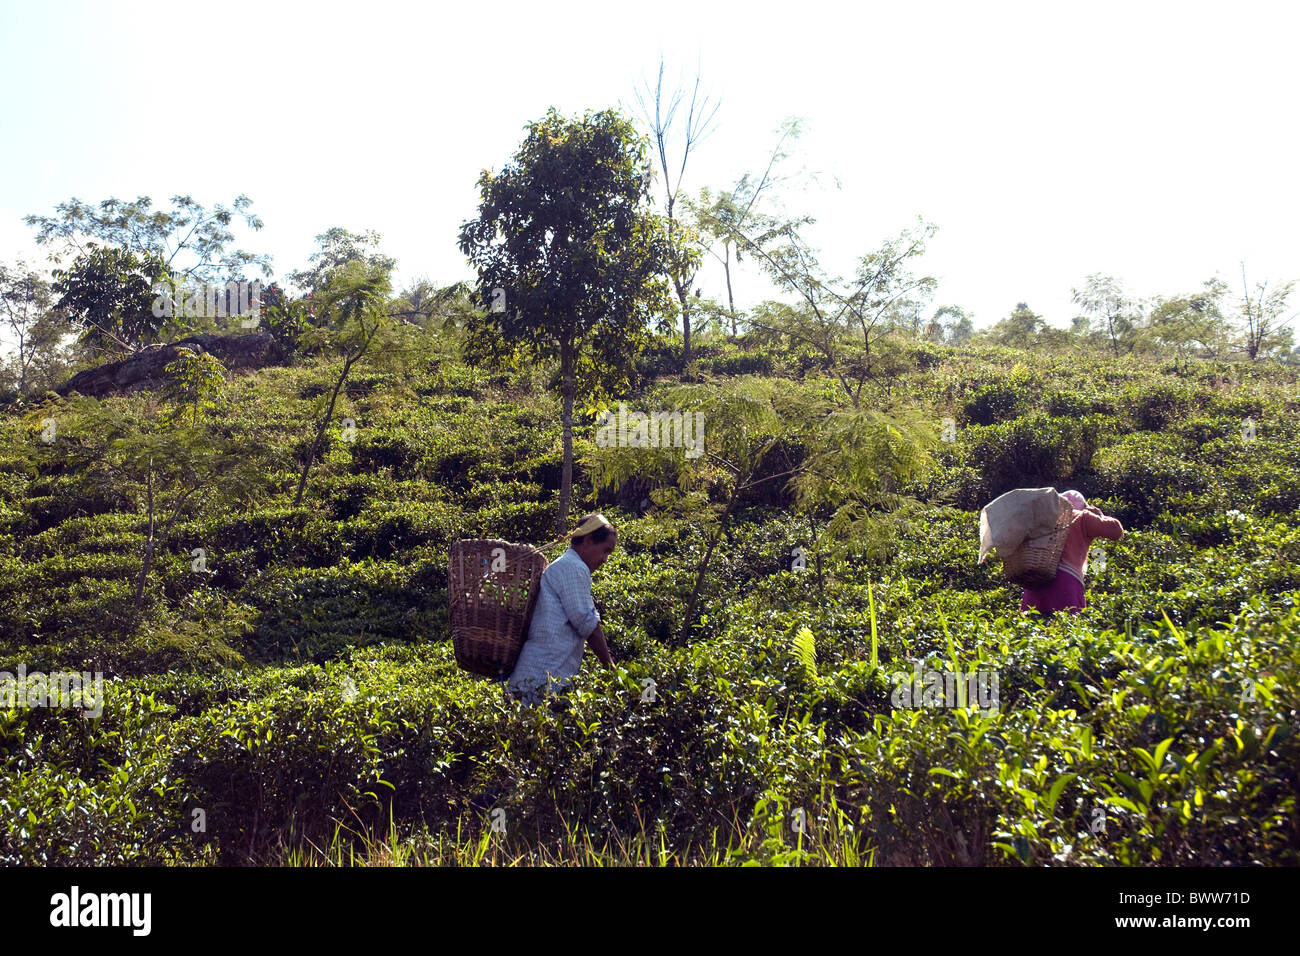 On sprawling tea plantations near Darjeeling workers pluck a few fresh leaves from each shrub - Stock Image